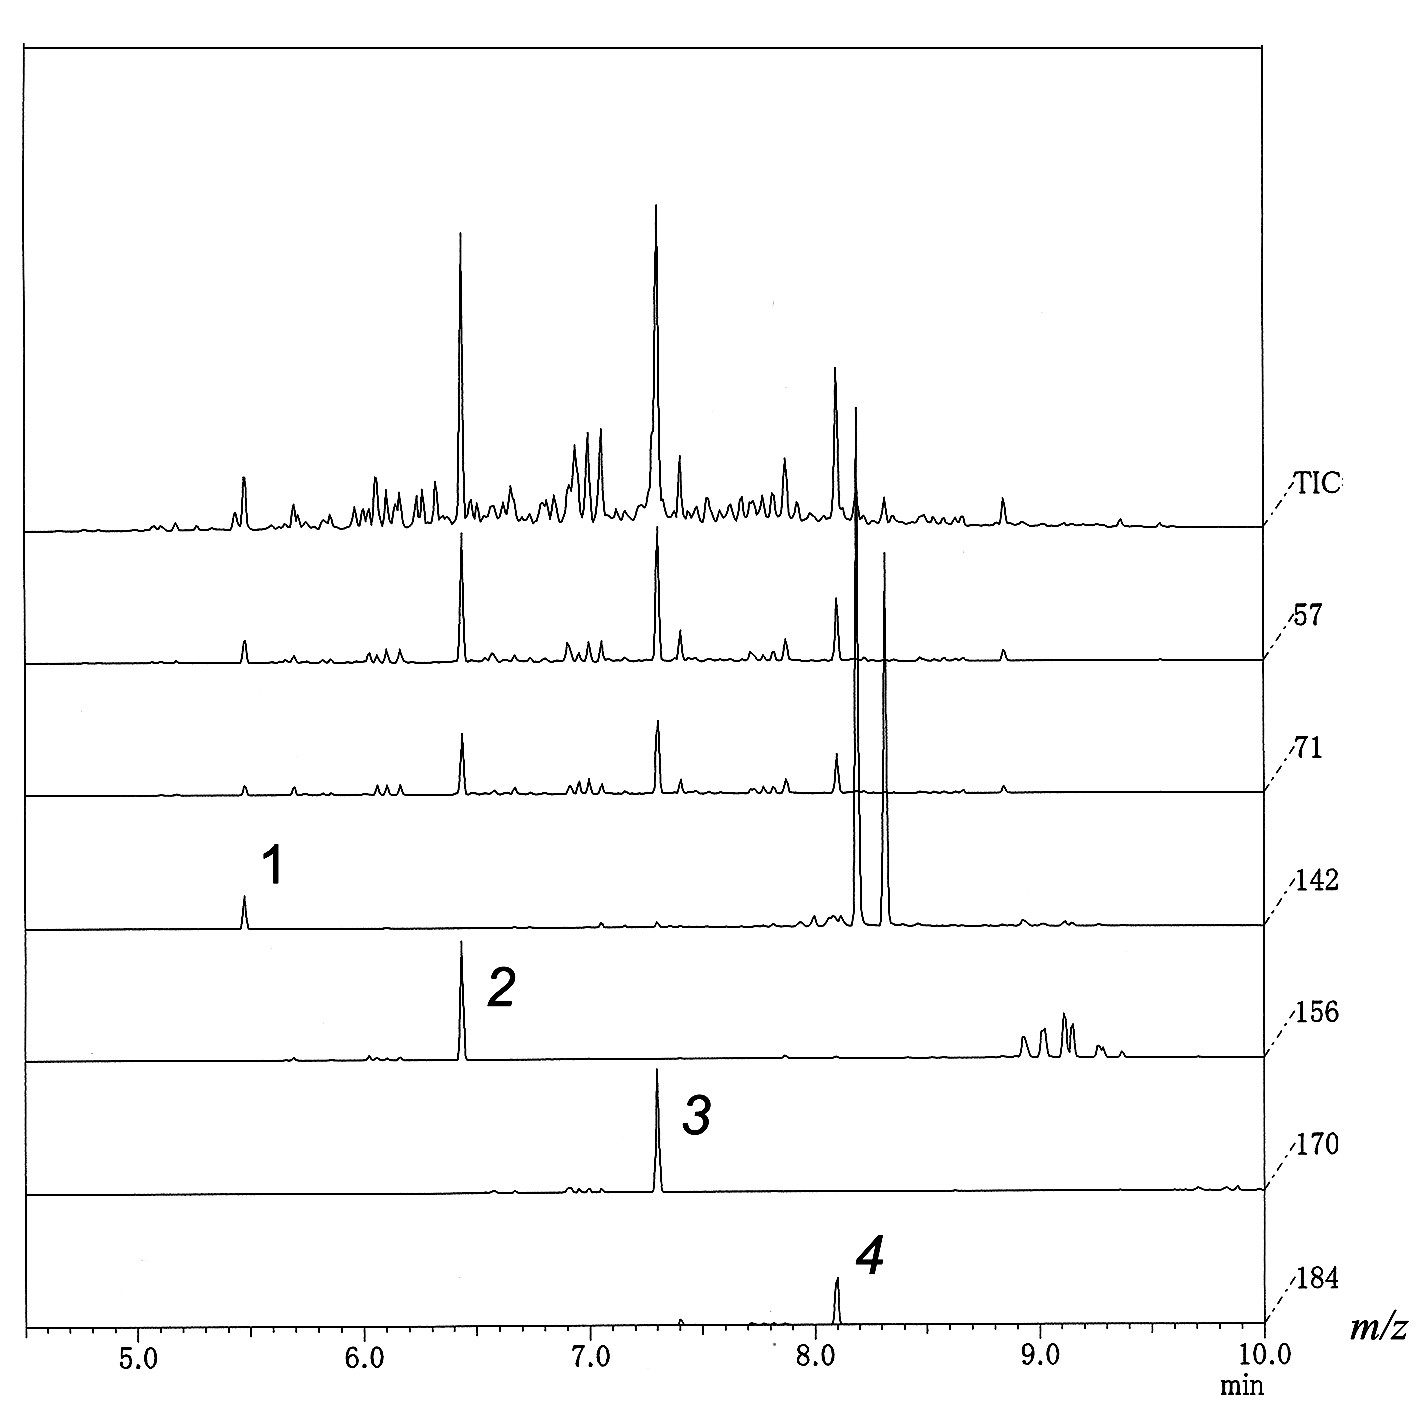 Figure 1. Total ion and mass chromatograms for each ion are shown. 1: n-decane, 2: n-undecane, 3: n-dodecane, 4: n-tridecane.